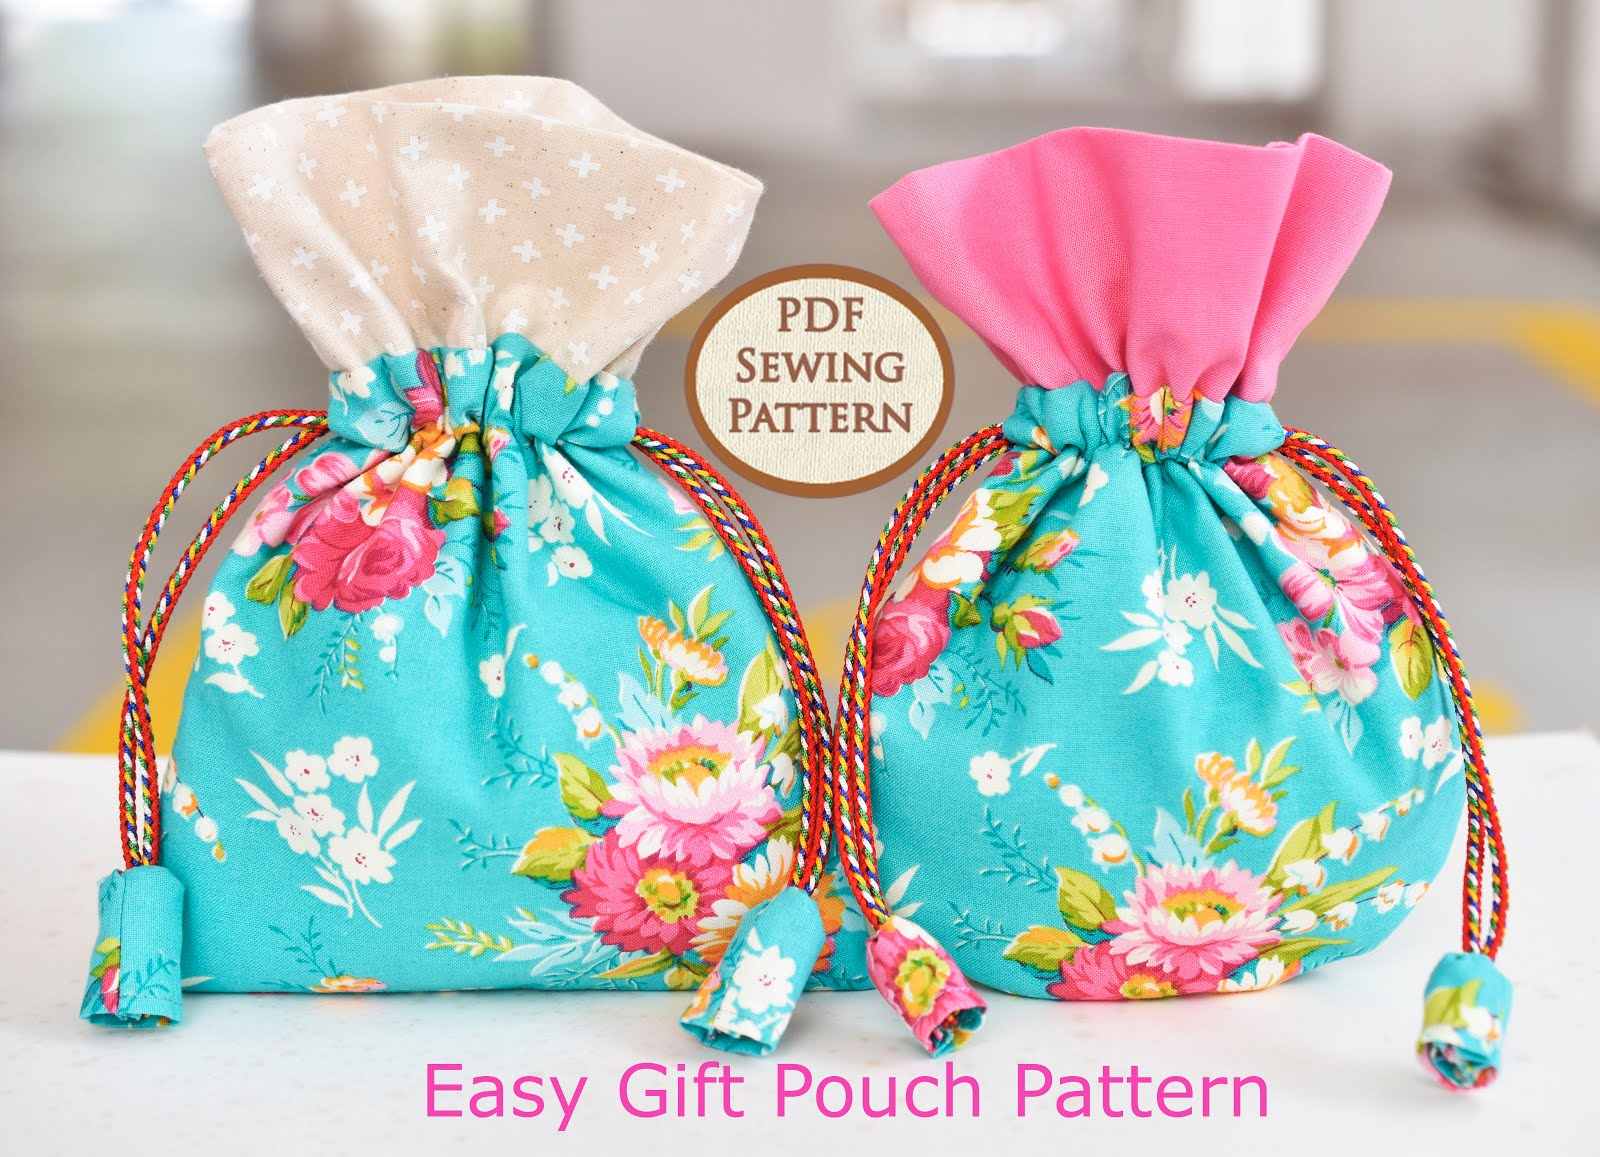 Why not make your own gift pouch?